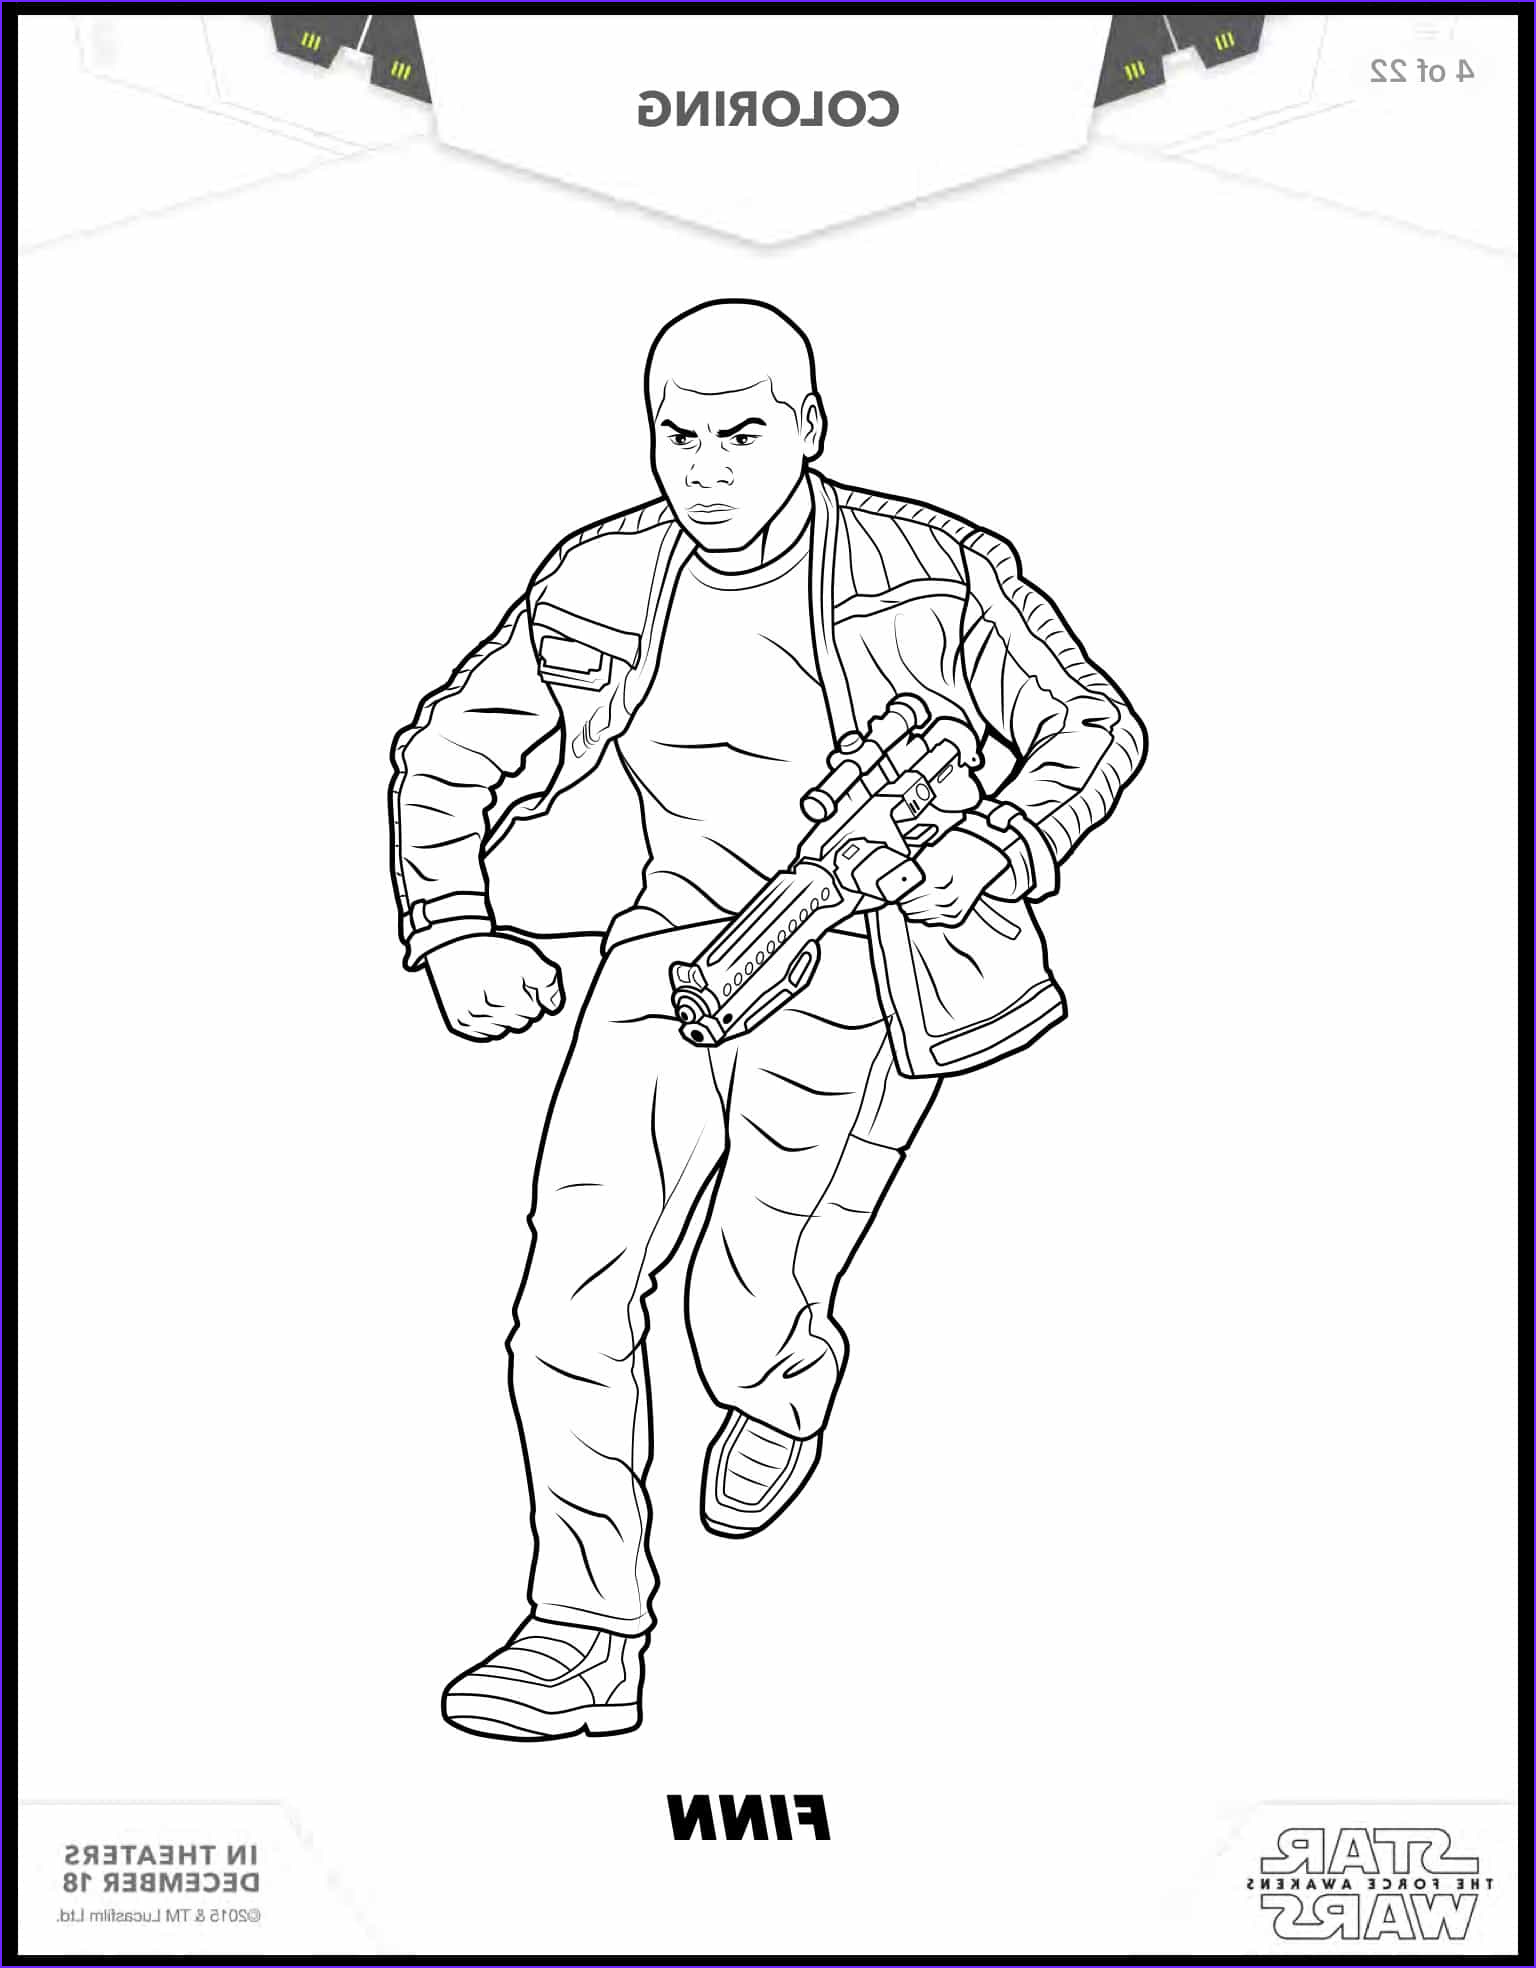 Star Wars Coloring Pages Inspirational Photos 8 Free Star Wars the force Awakens Coloring Sheets